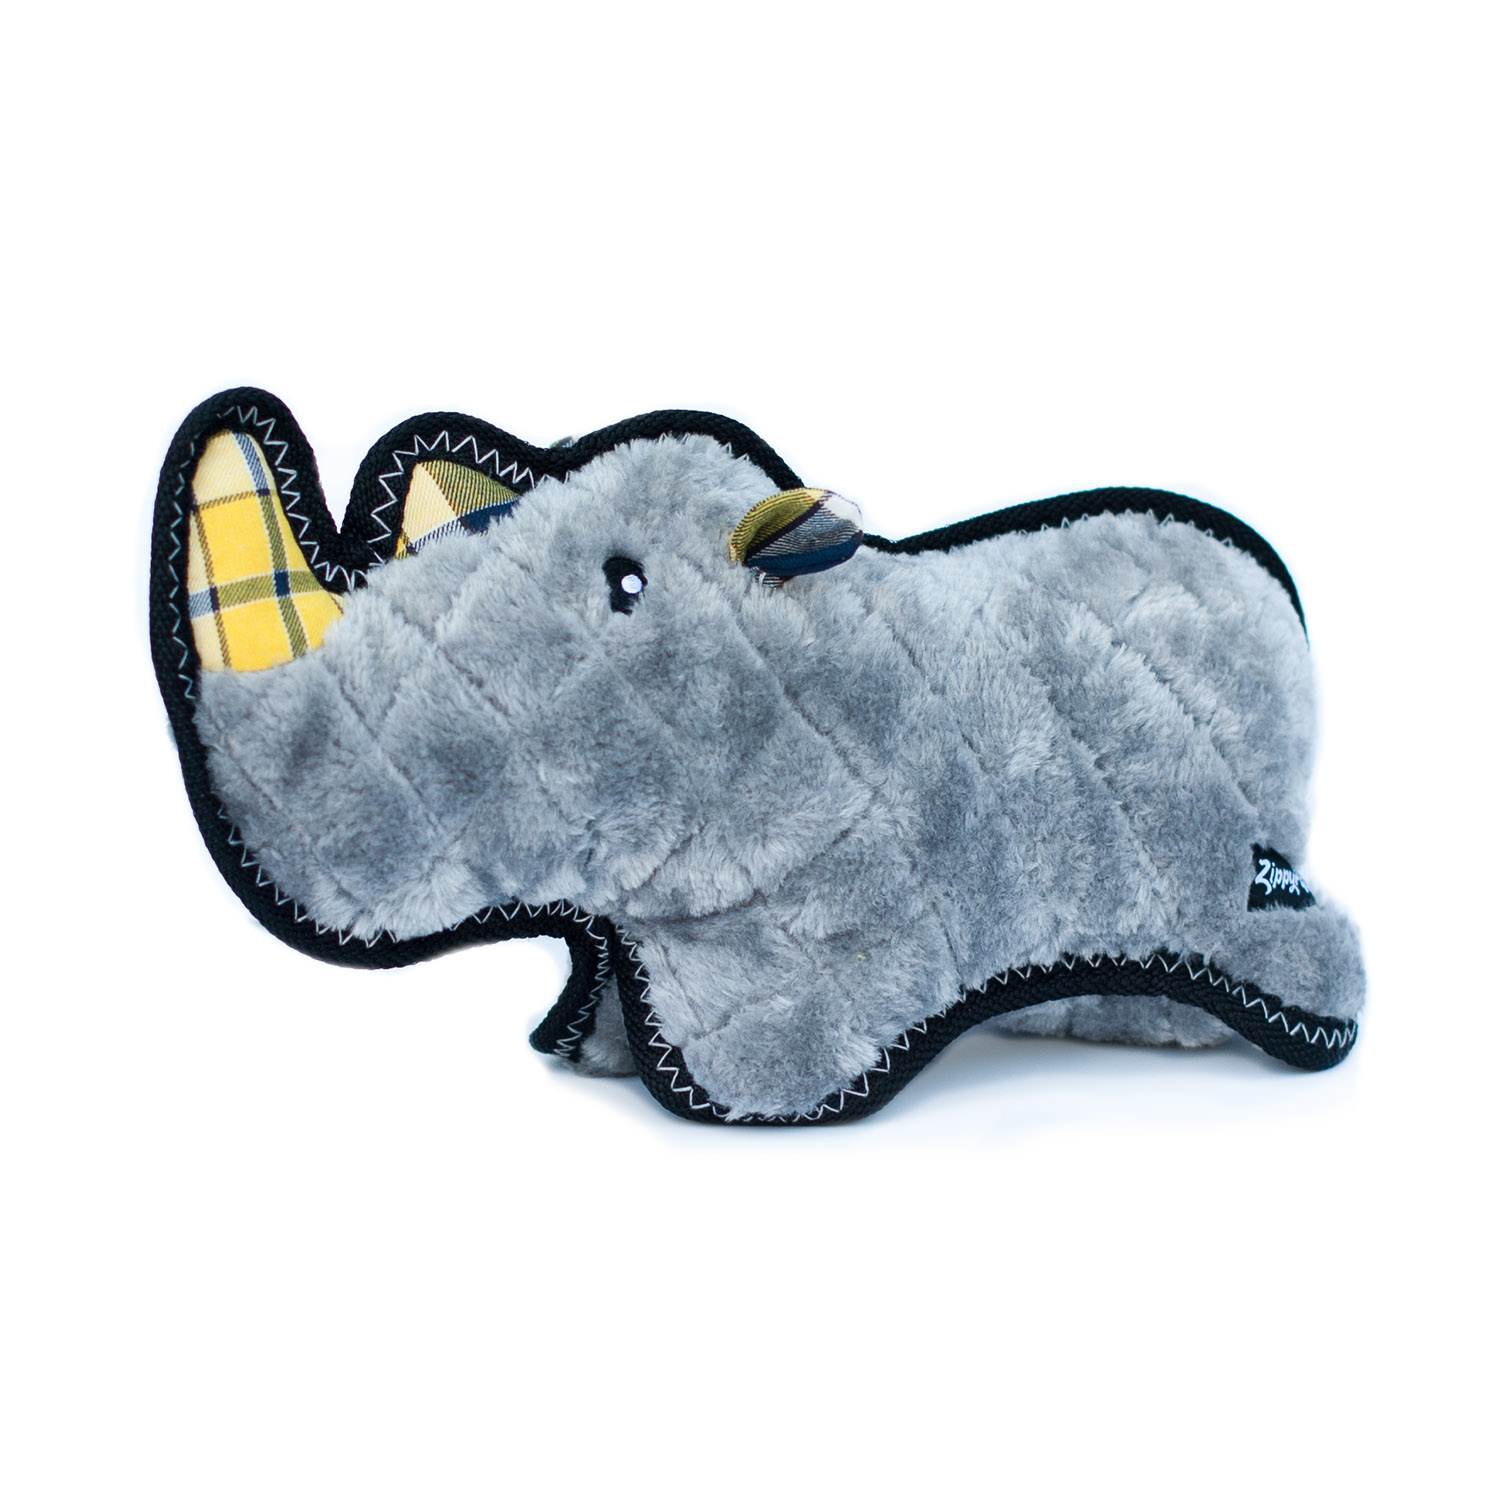 Z-Stitch® Grunterz - Ronny the Black Rhino-0